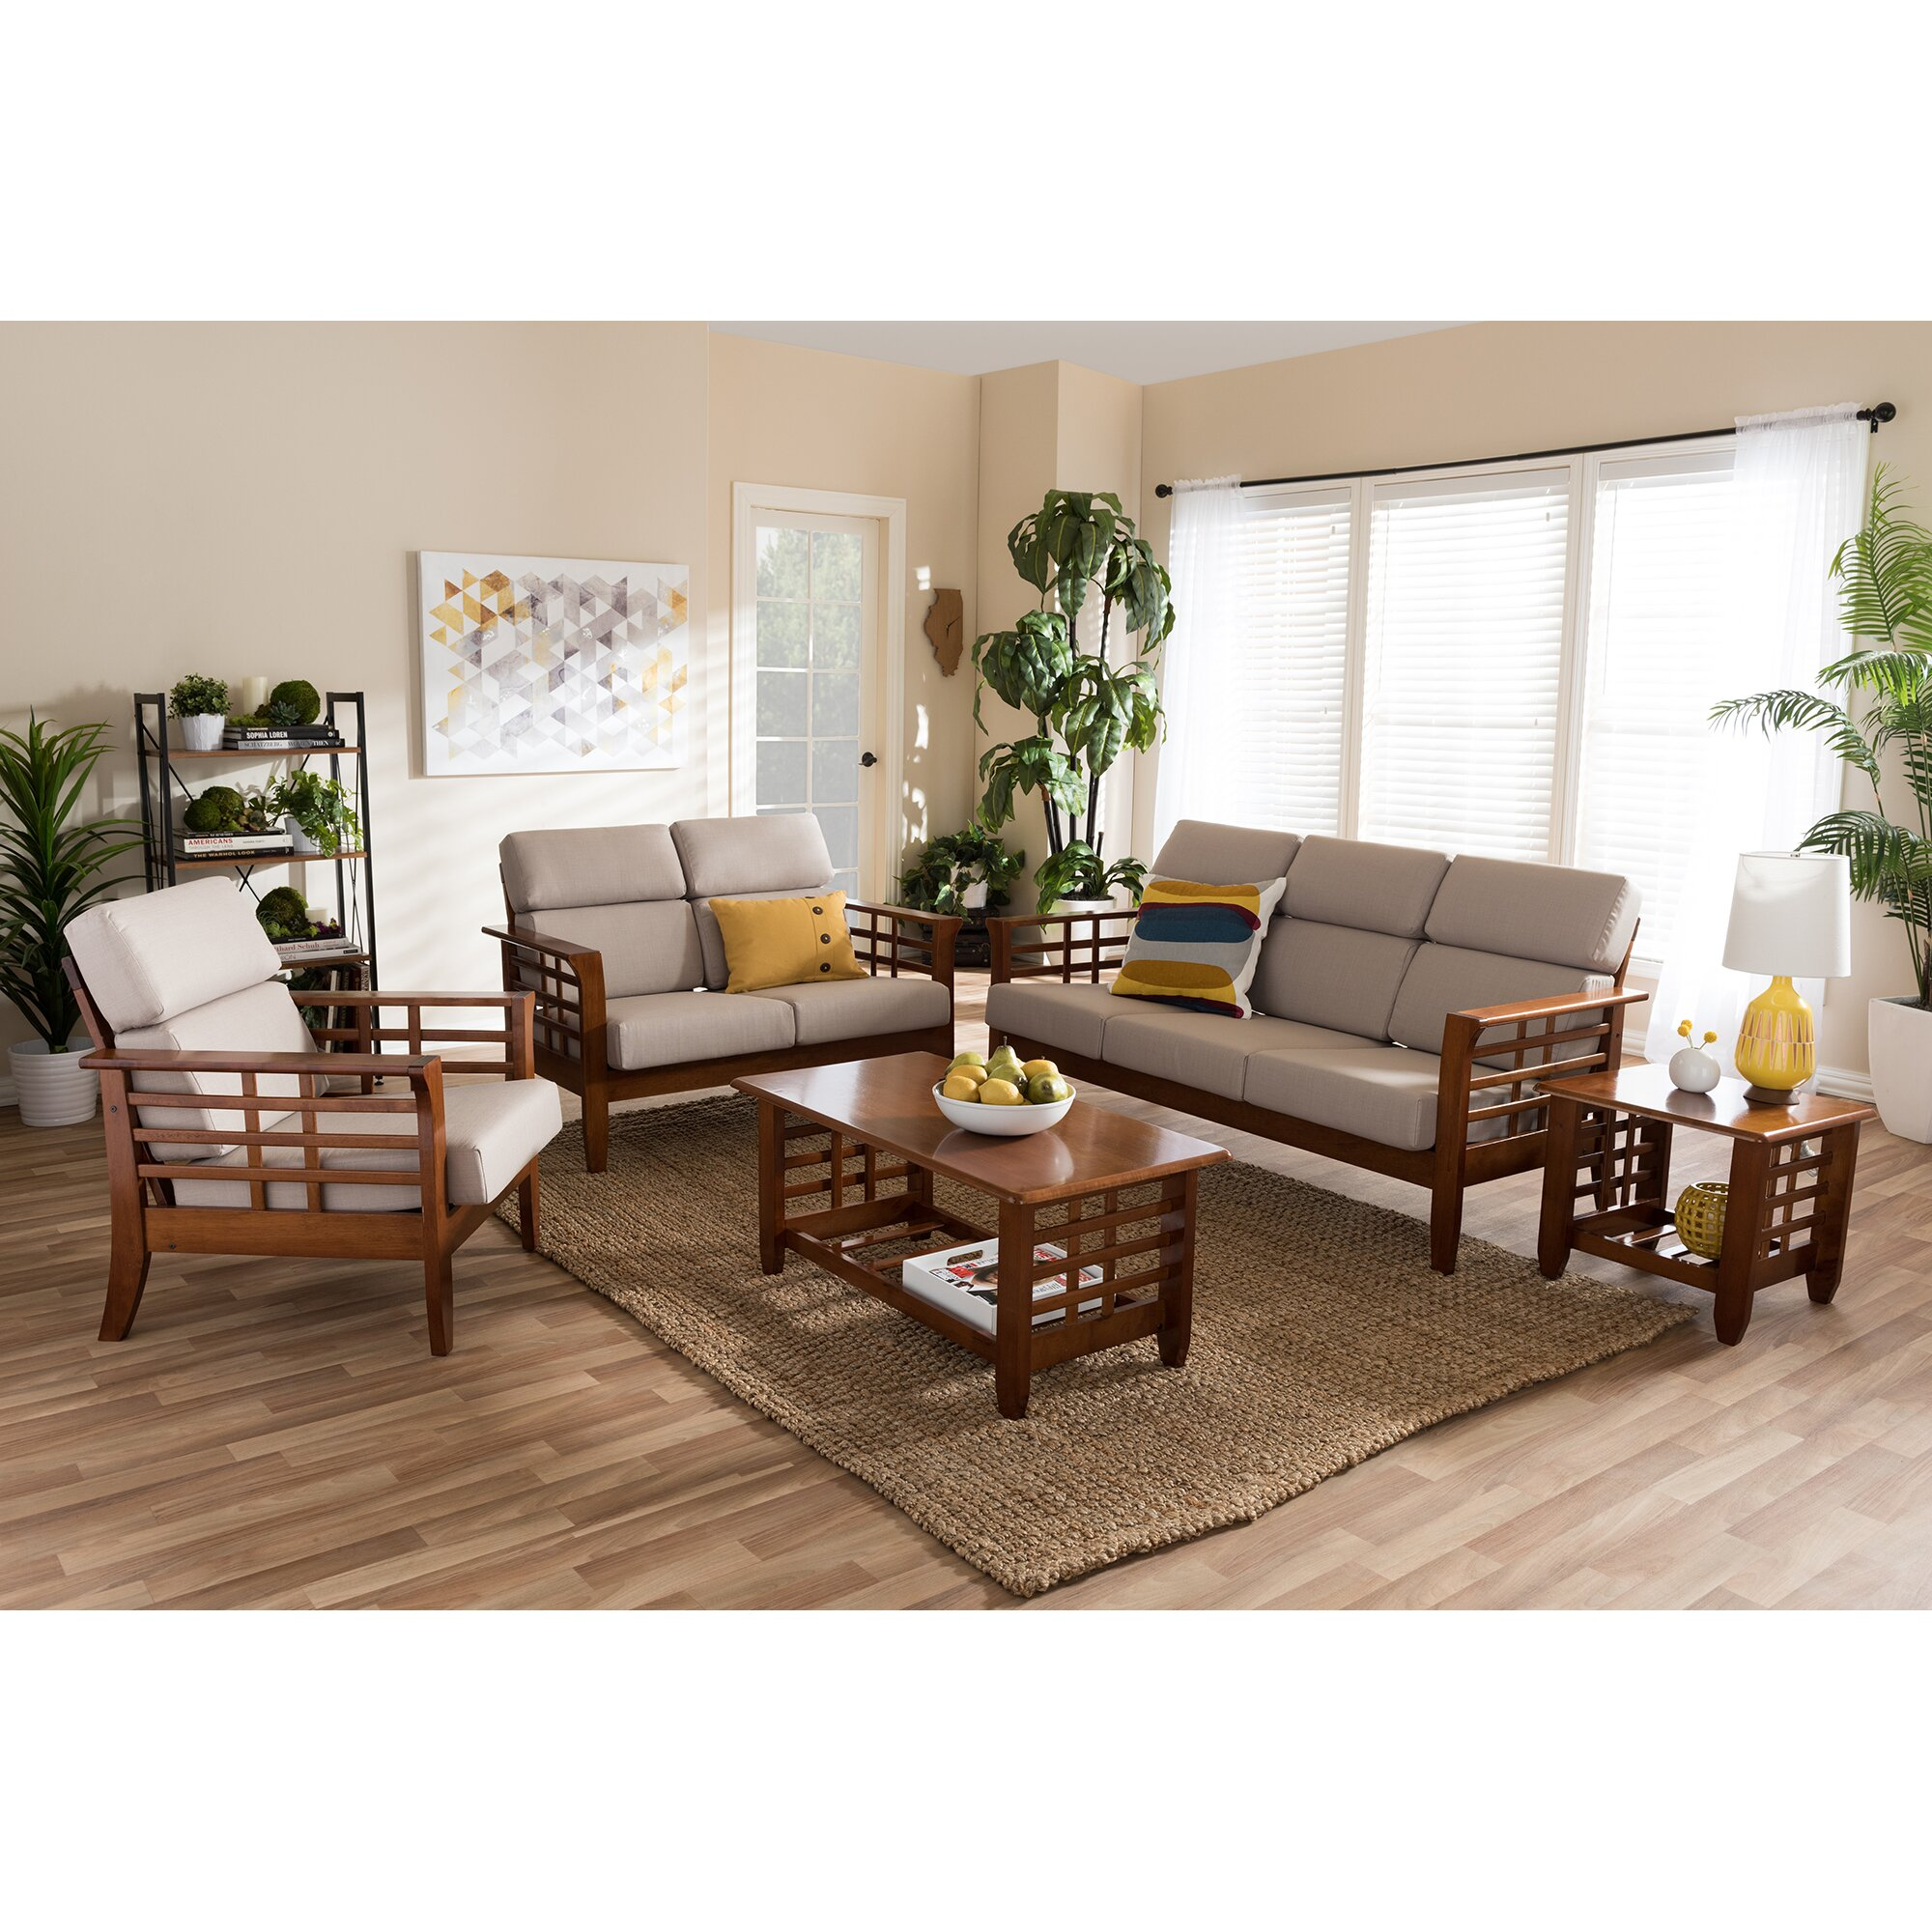 Latitude run aguon 5 piece living room set reviews wayfair for Living room 5 piece sets